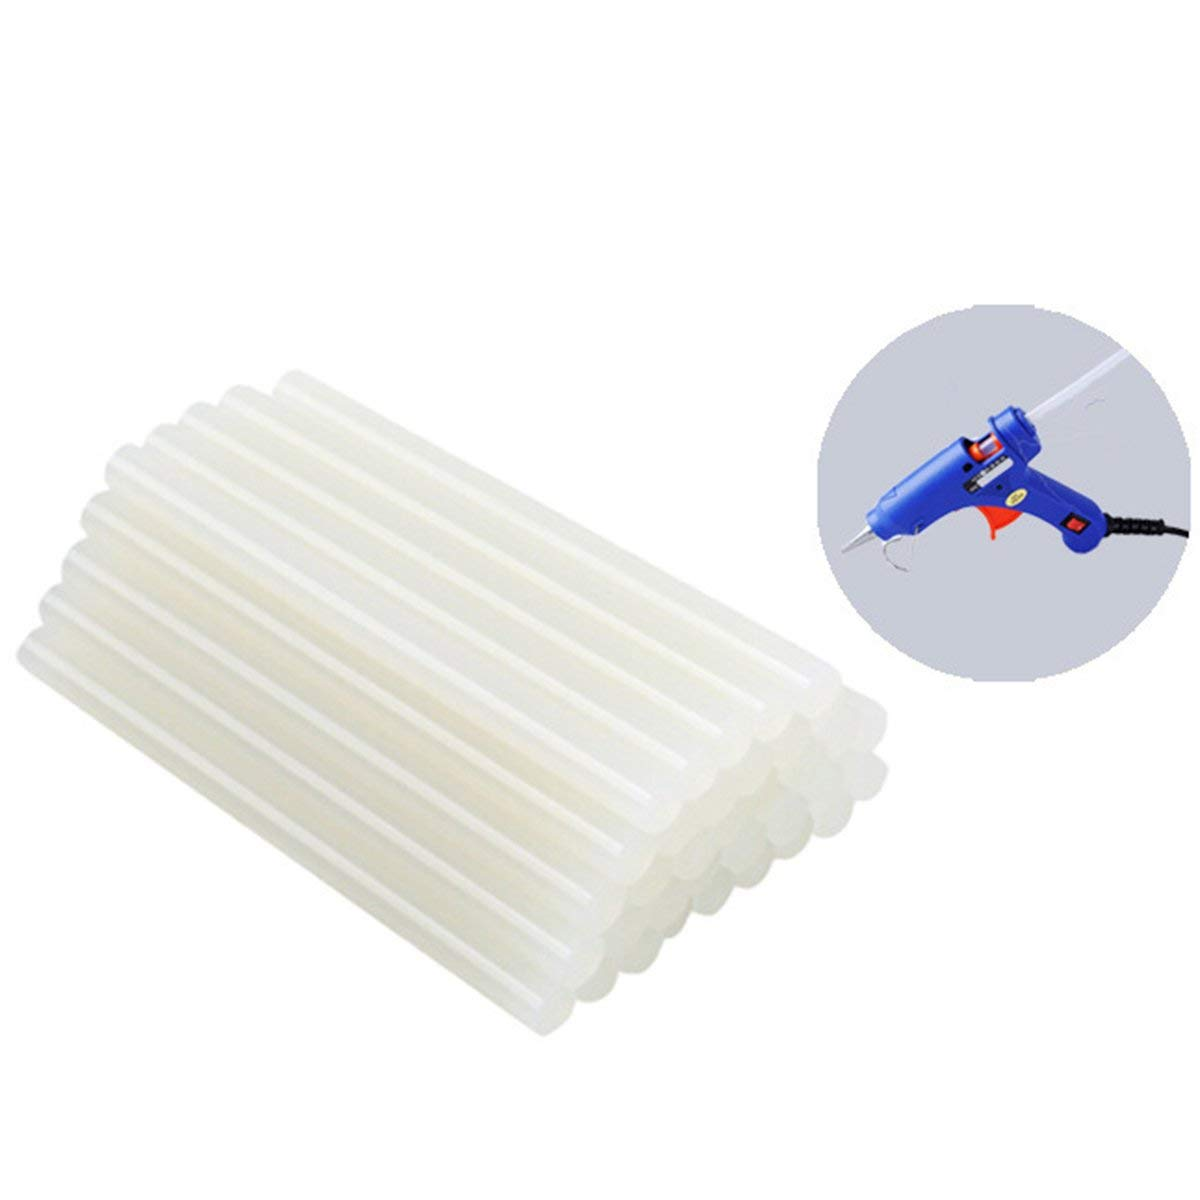 THIS IS -11 mm Multiply by 300 mm Translucent, Smooth,Industrial, DIY Hot Melted glue for Gun , Environmentally Friendly Hot Melt Adhesive Multi - purpose GLUE